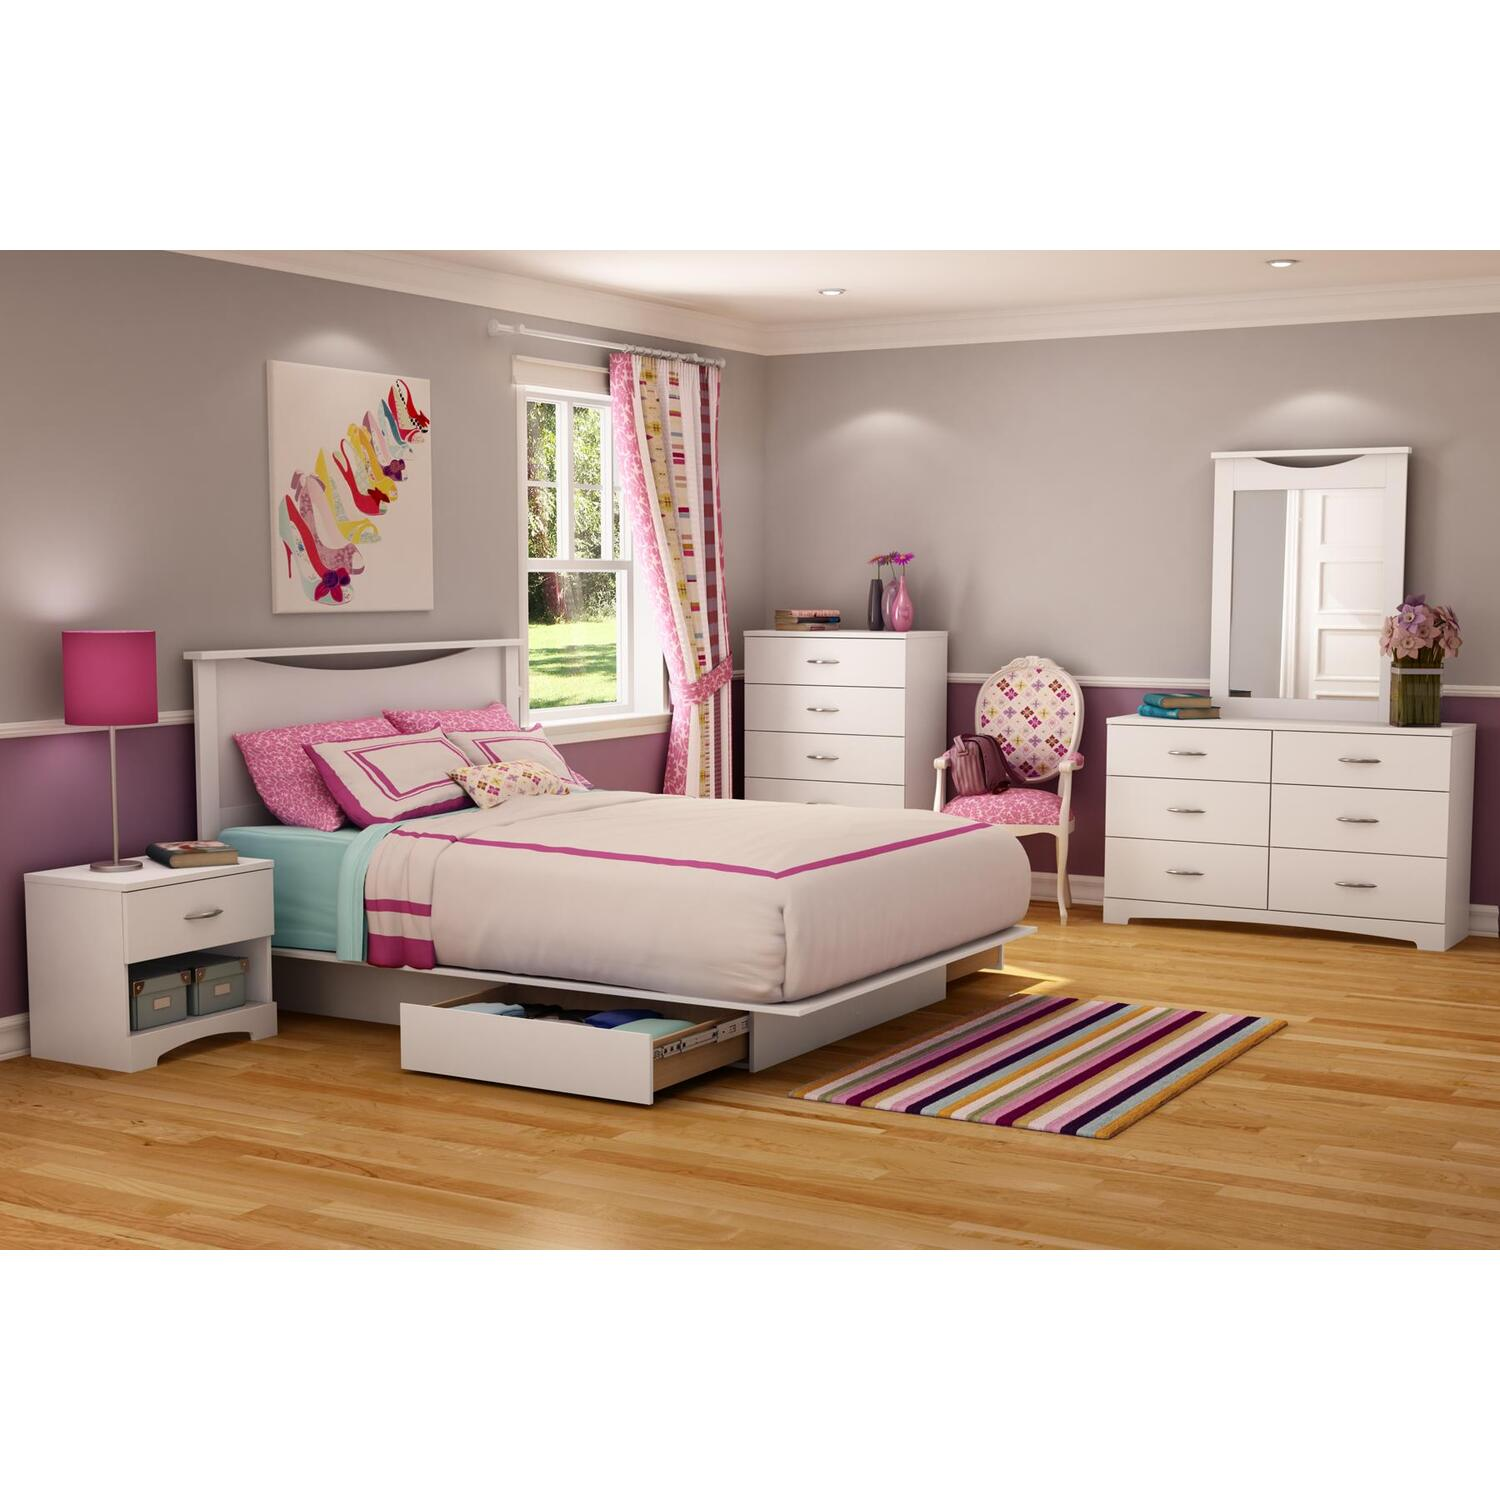 Step One Full Queen 6 Piece Bedroom Set In Pure White 1133 9900